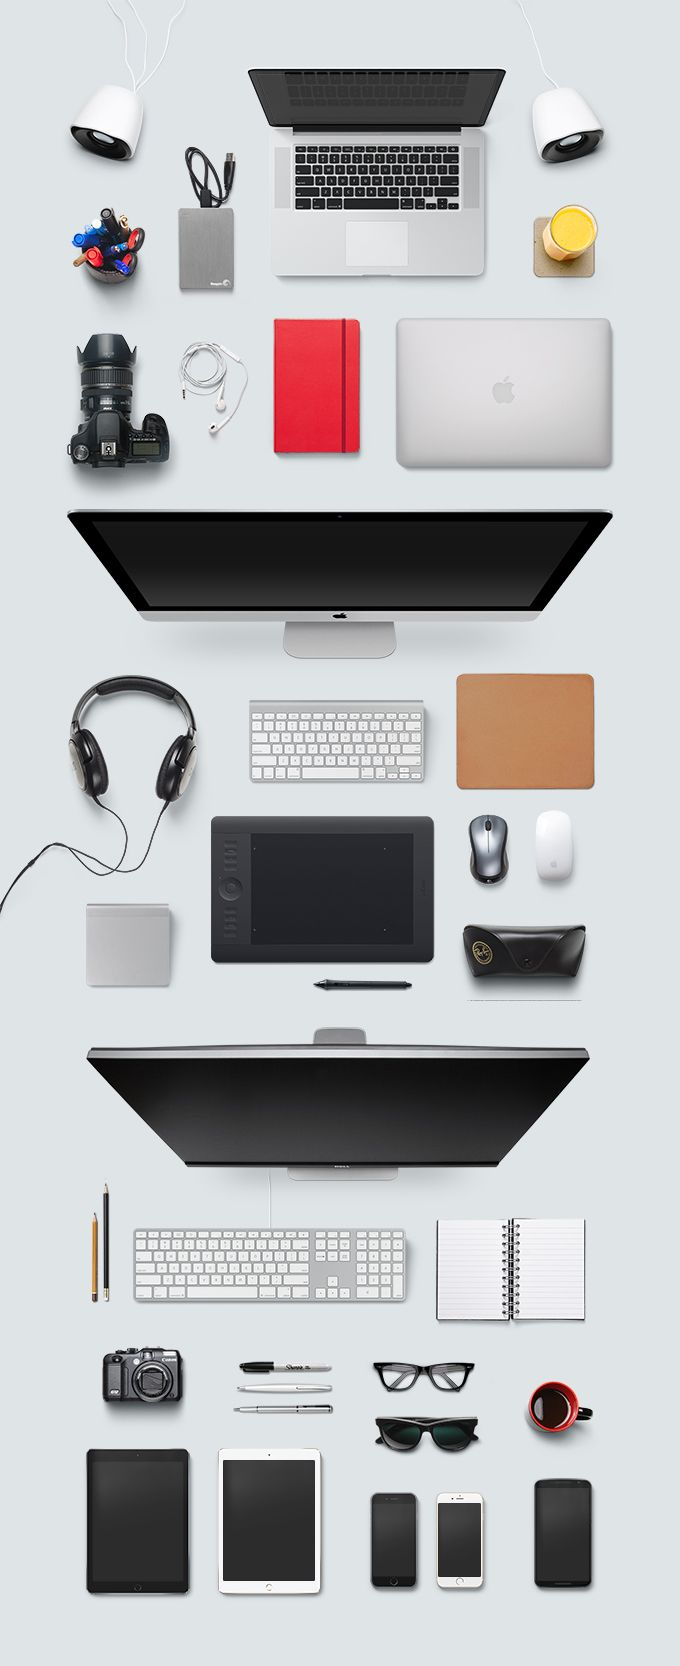 Designer Desk Essentials, vector graphics - 365PSD.com http://goo.gl/UCeeZo